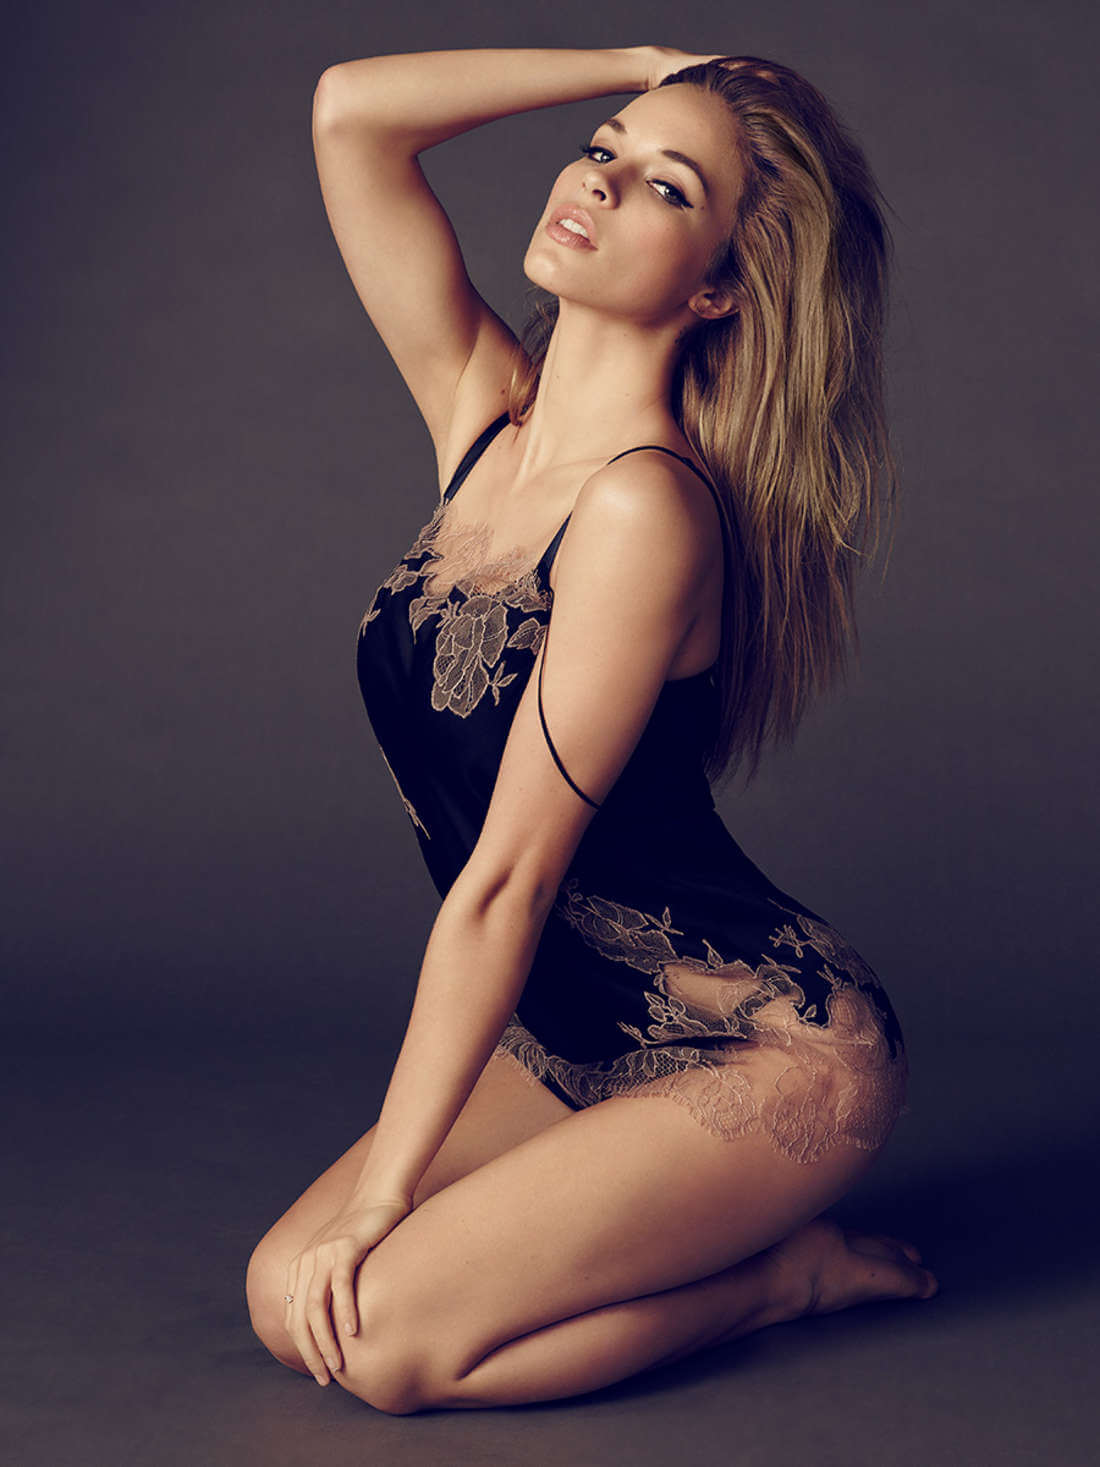 49 Hot Pictures Of Alexis Knapp Are Epitome Of Sexiness